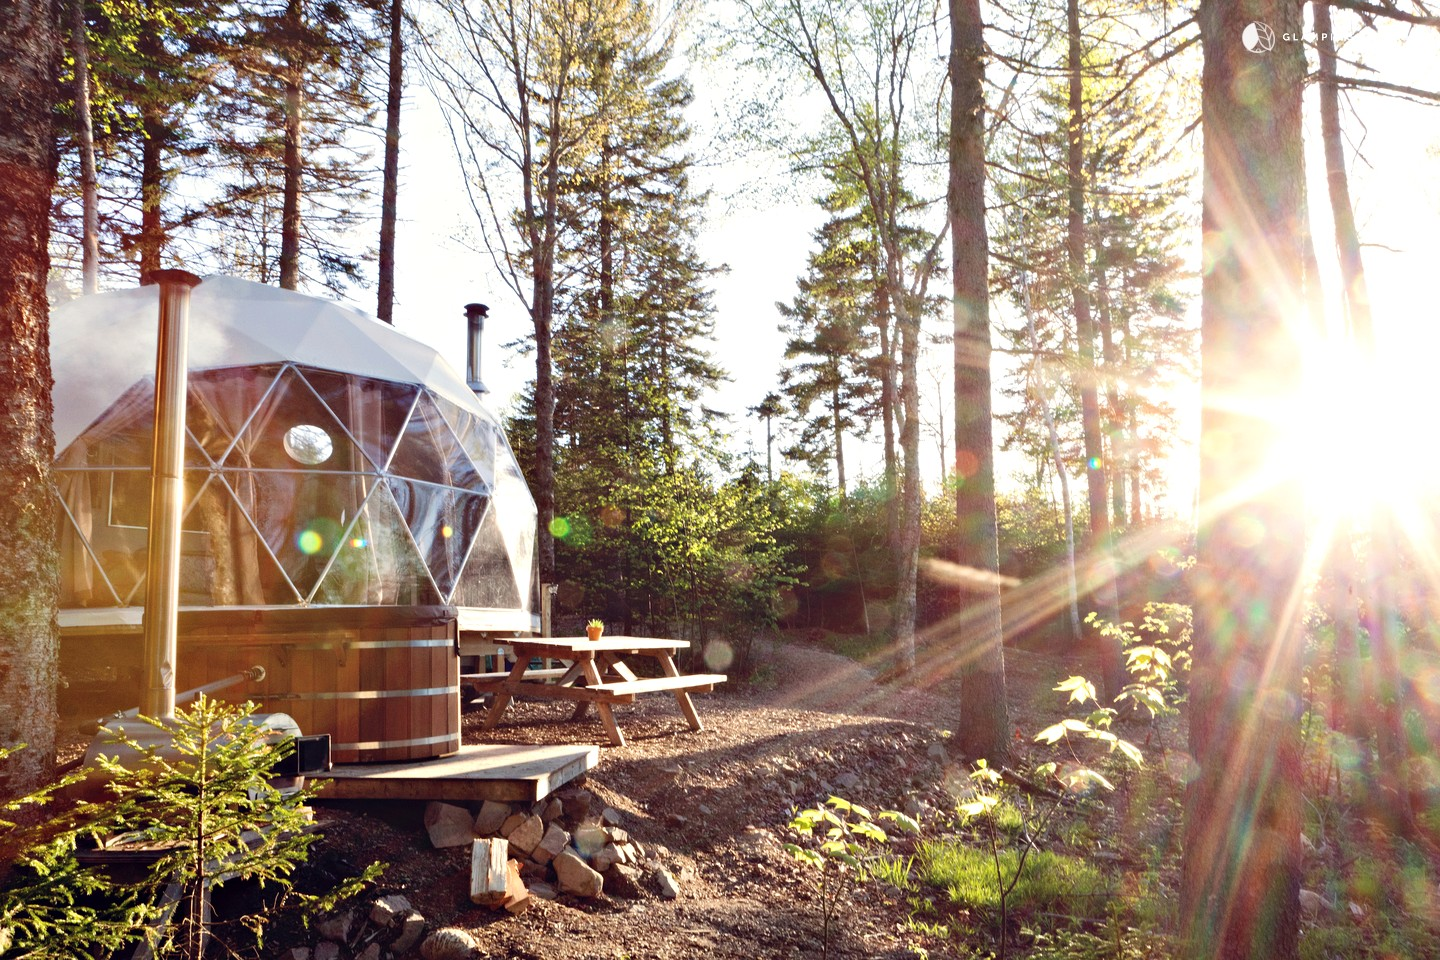 8 Dome Cabins and Tents - Glampinghub Luxury Dome with Hot Tub Canada